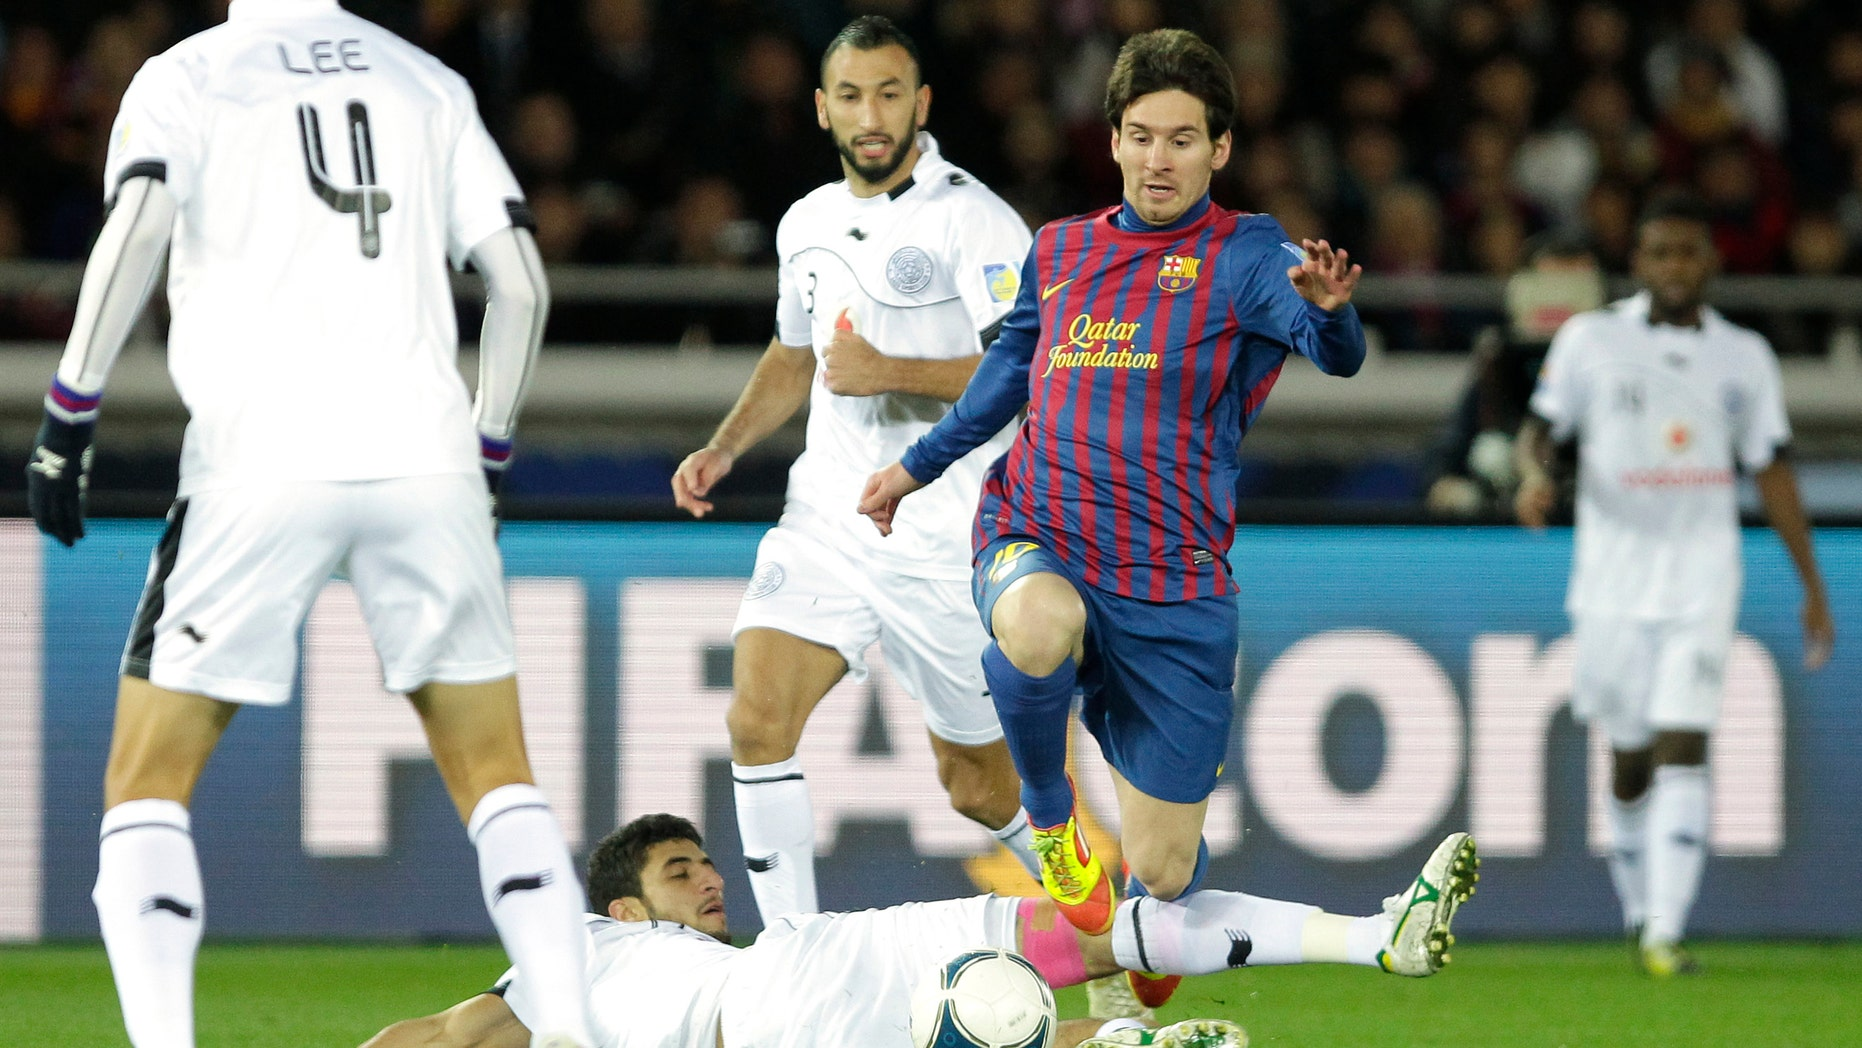 Spain's FC Barcelona midfielder Lionel Messi avoids a tackle by Qatar's Al-Sadd Sports Club defender Ibrahim Abdulmajed during their semifinal match of the Club World Cup soccer tournament in Yokohama, near Tokyo, Thursday, Dec. 15, 2011. (AP Photo/Shizuo Kambayashi)